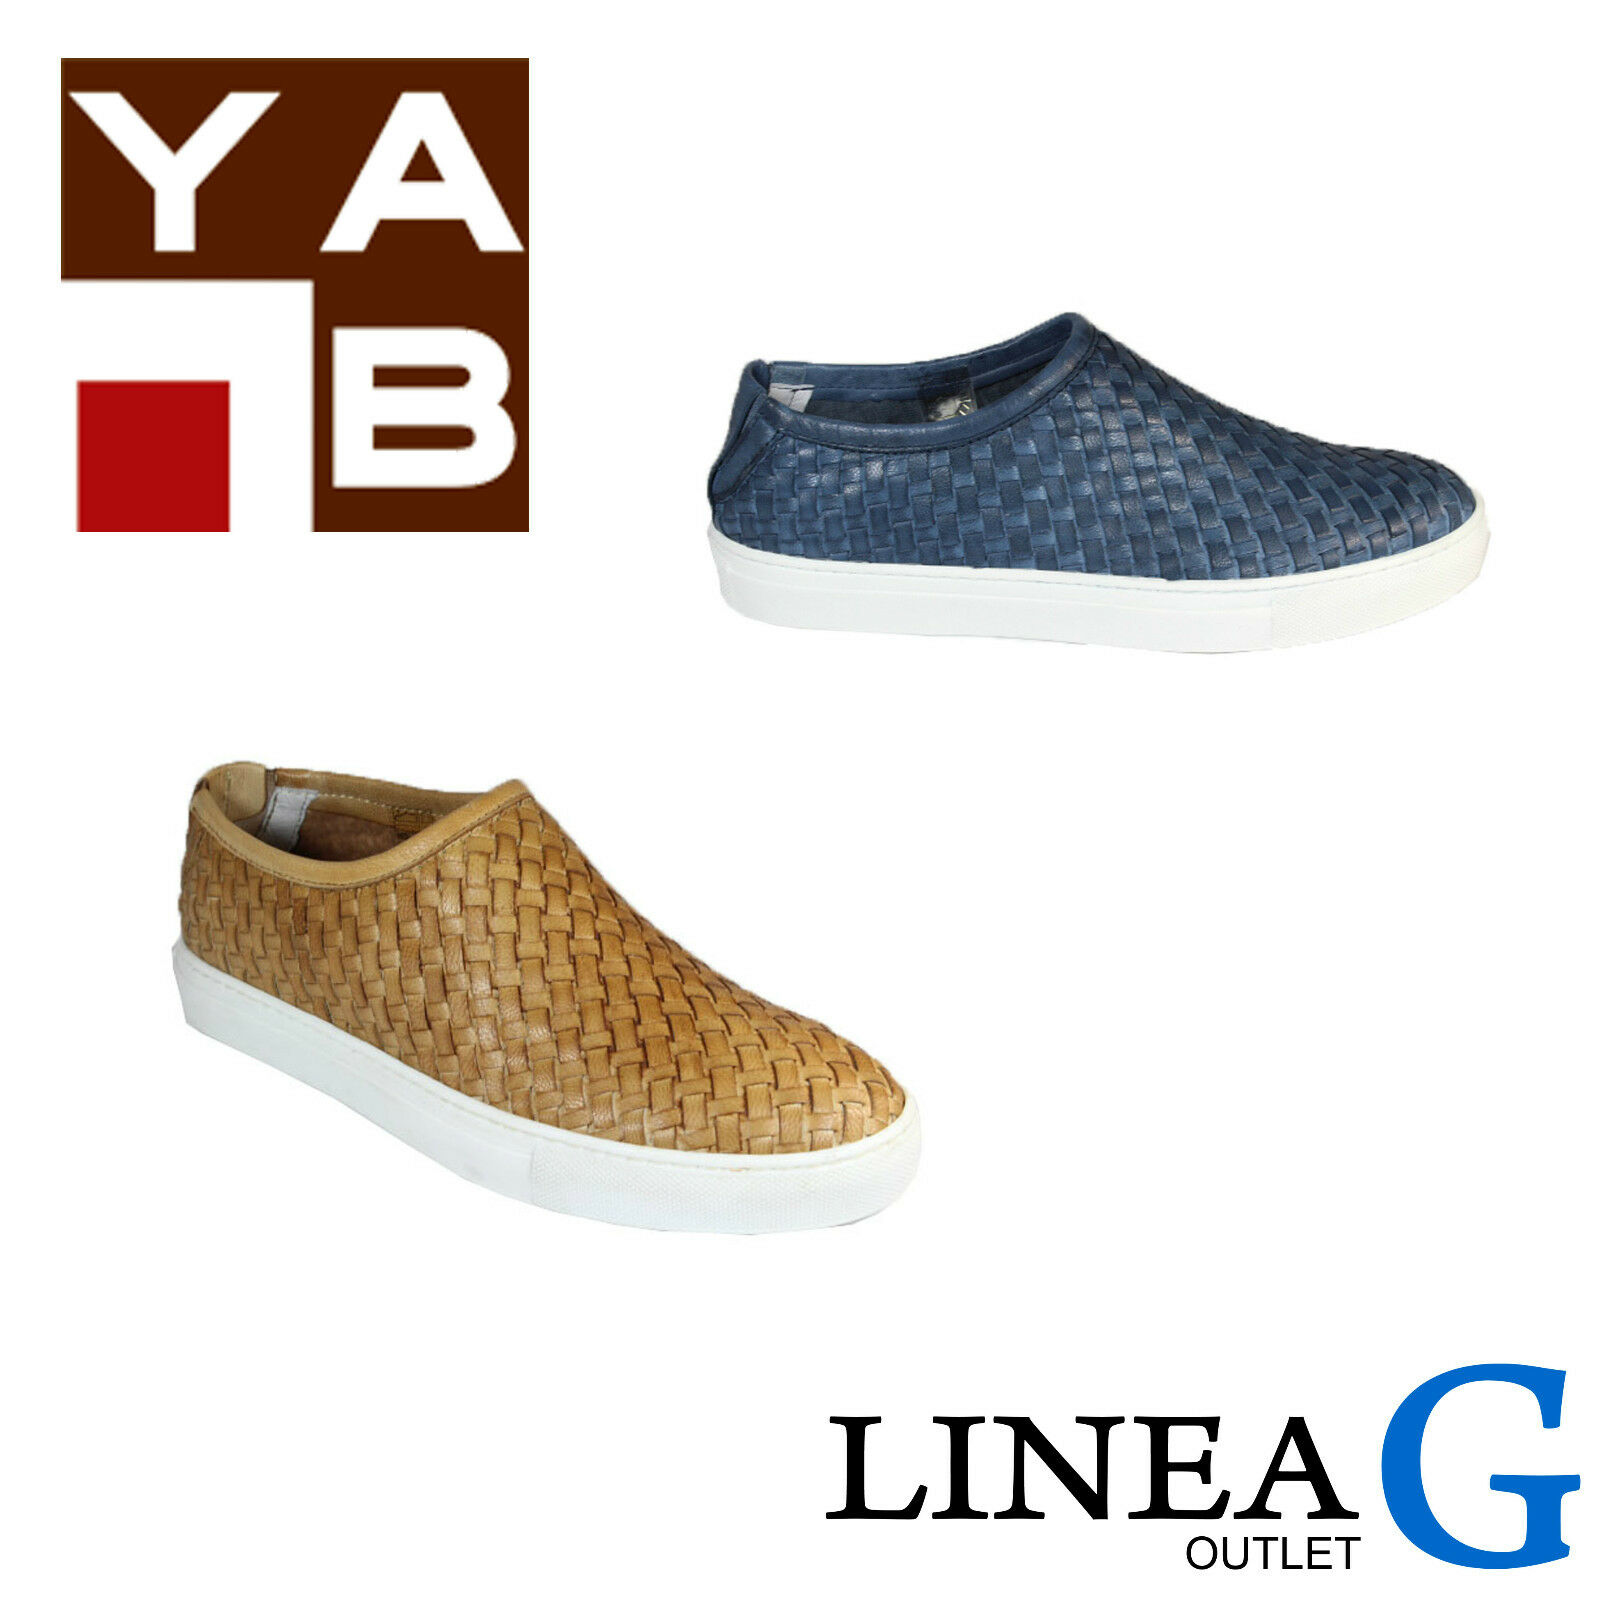 YAB leather slip on zapatillas S S 2016 slip on in pelle intrecciata P E 2016